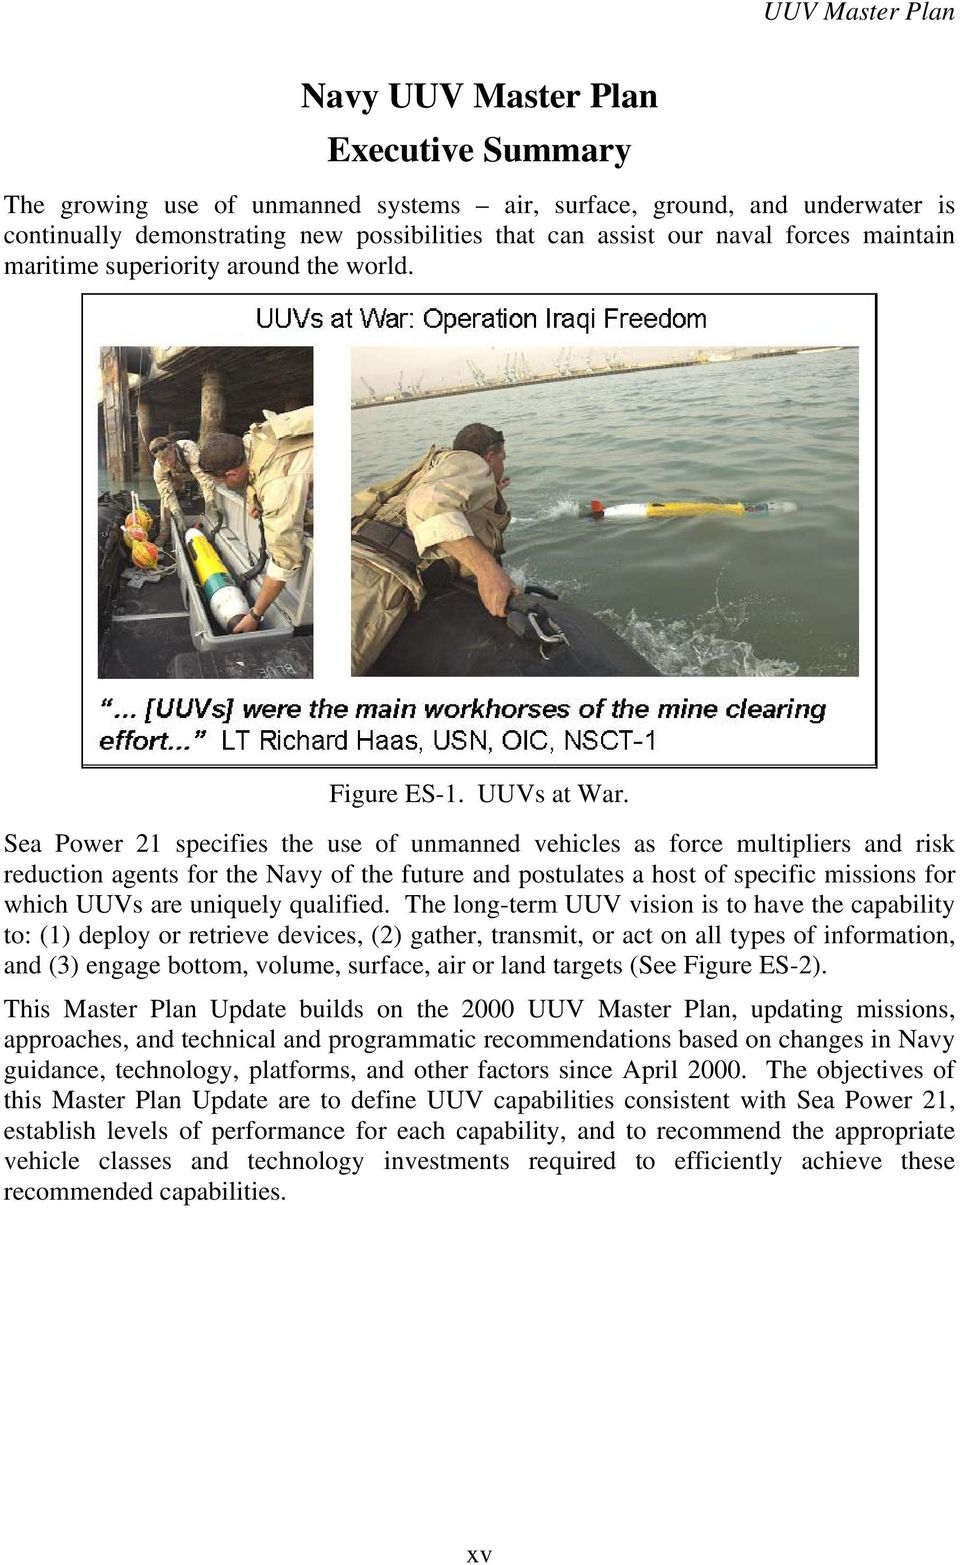 Sea Power 21 specifies the use of unmanned vehicles as force multipliers and risk reduction agents for the Navy of the future and postulates a host of specific missions for which UUVs are uniquely